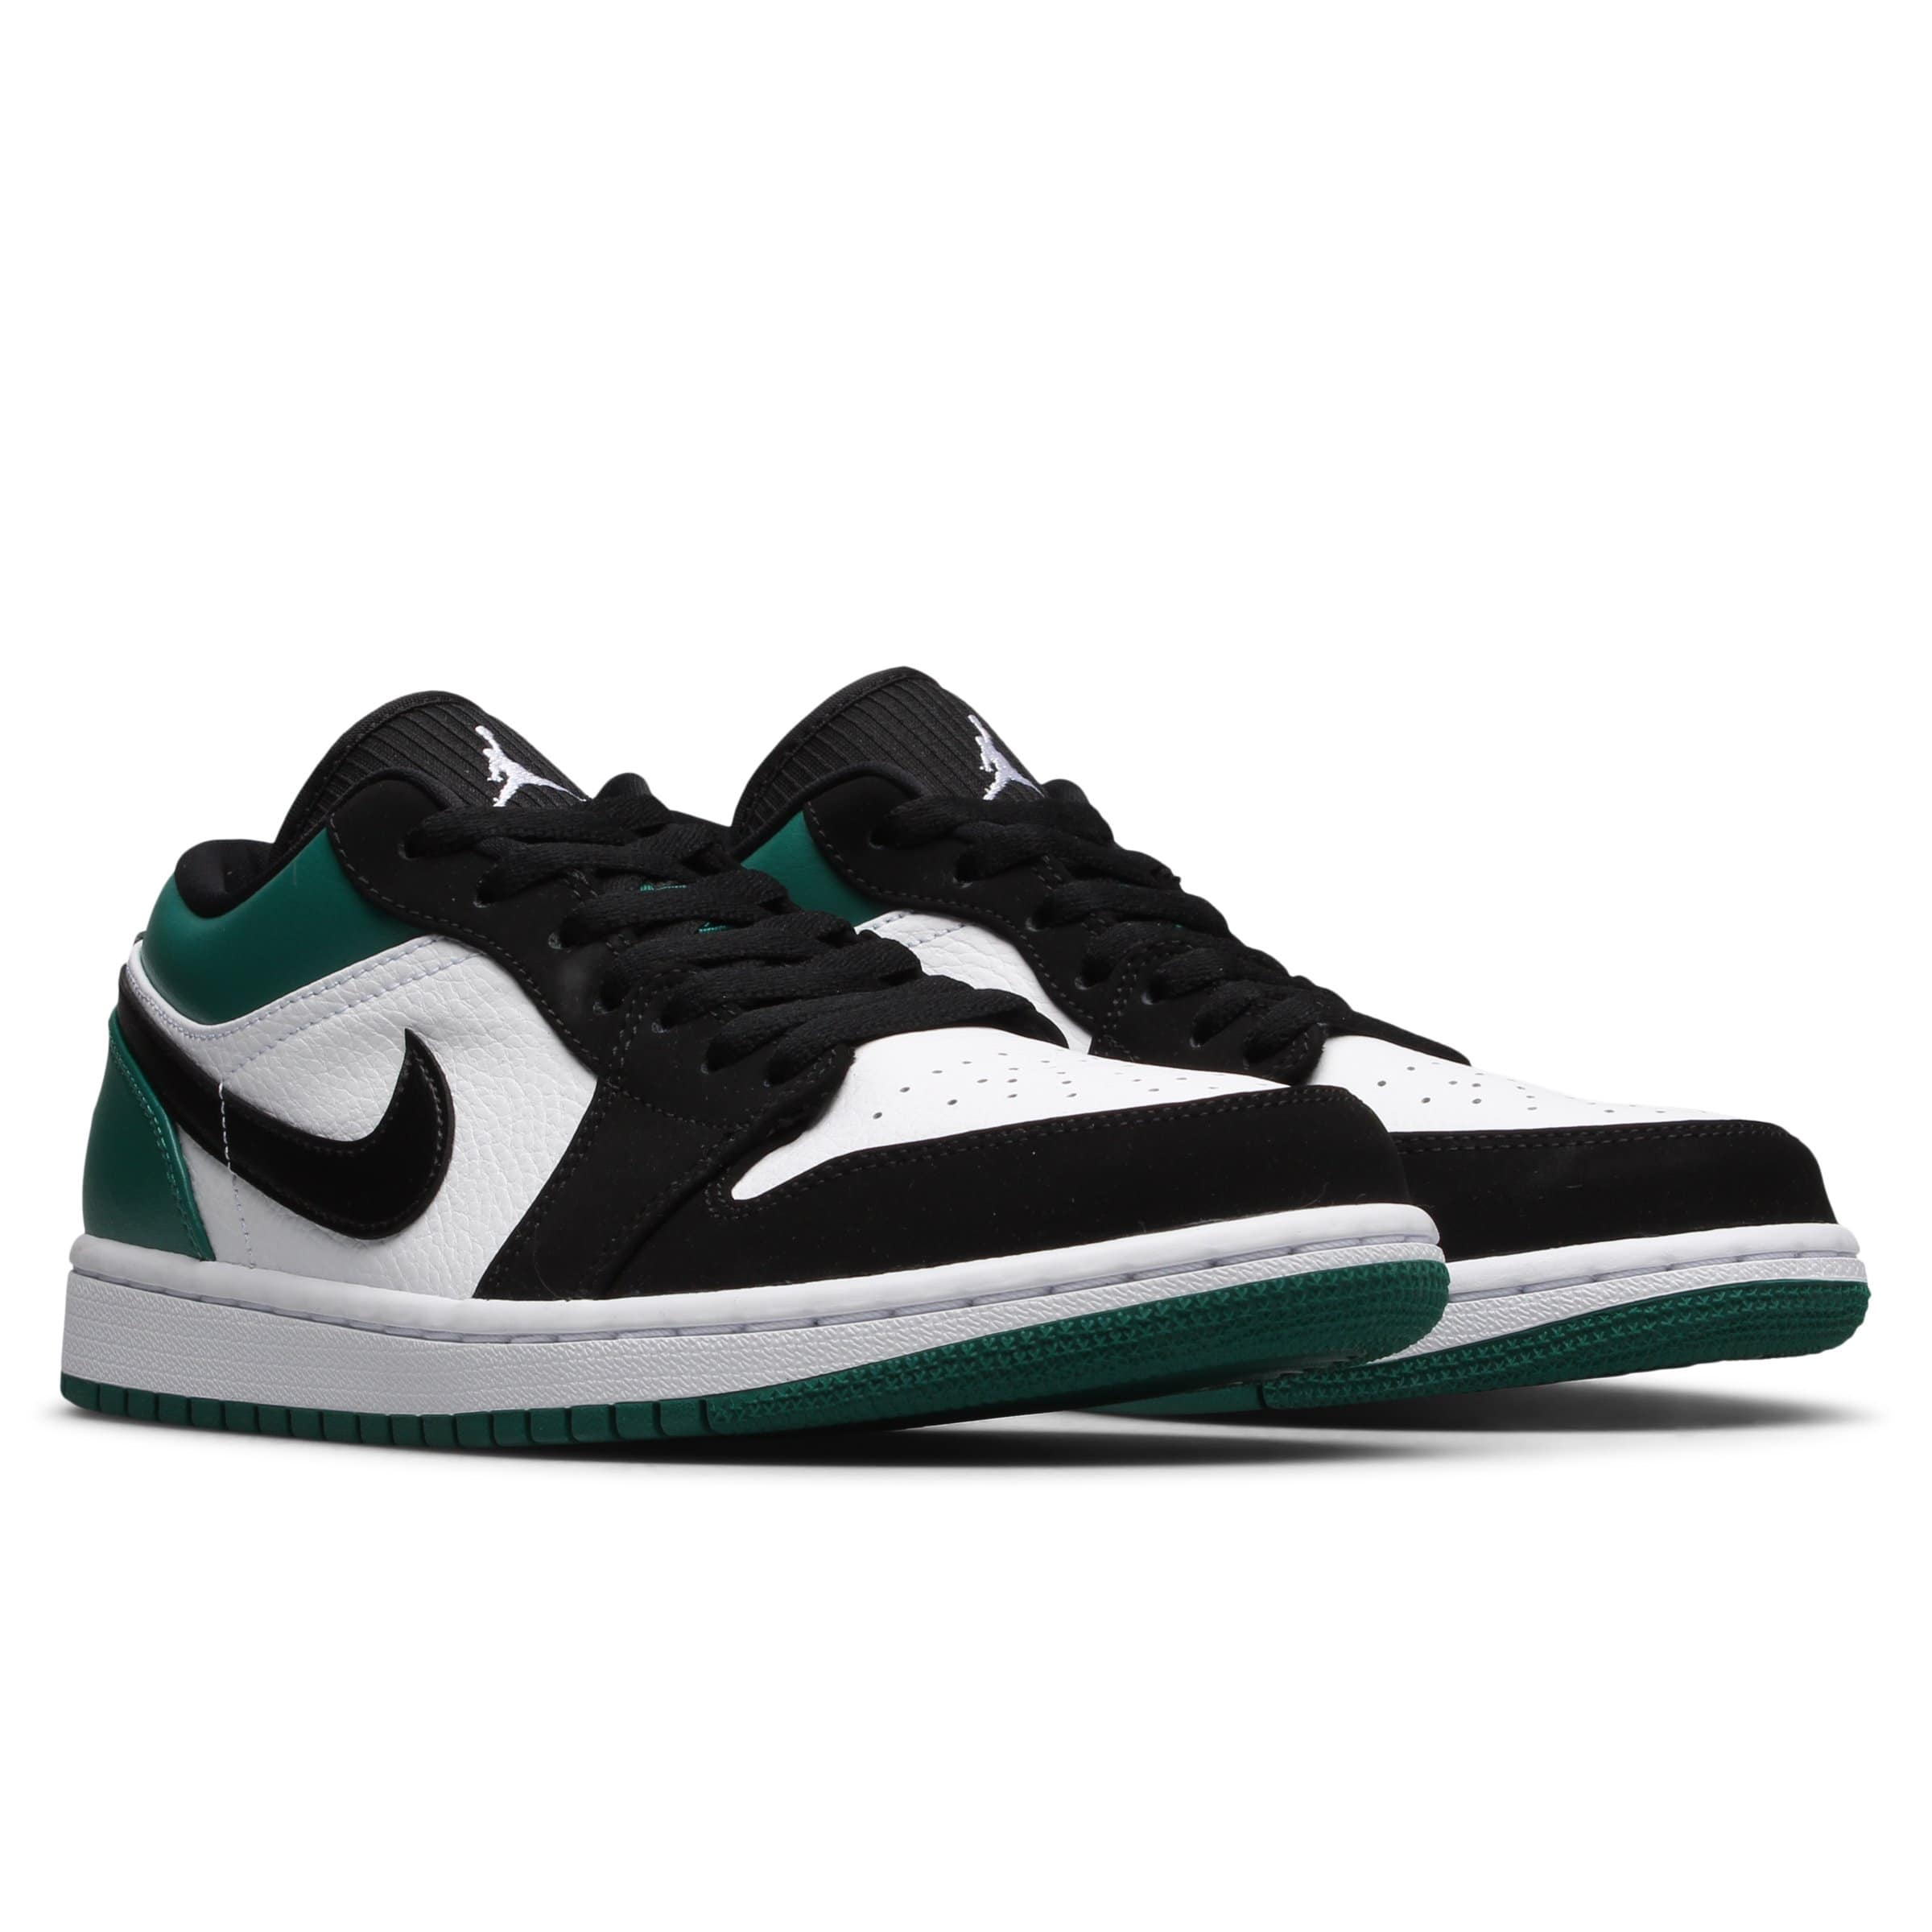 Air Jordan Shoes AIR JORDAN 1 LOW